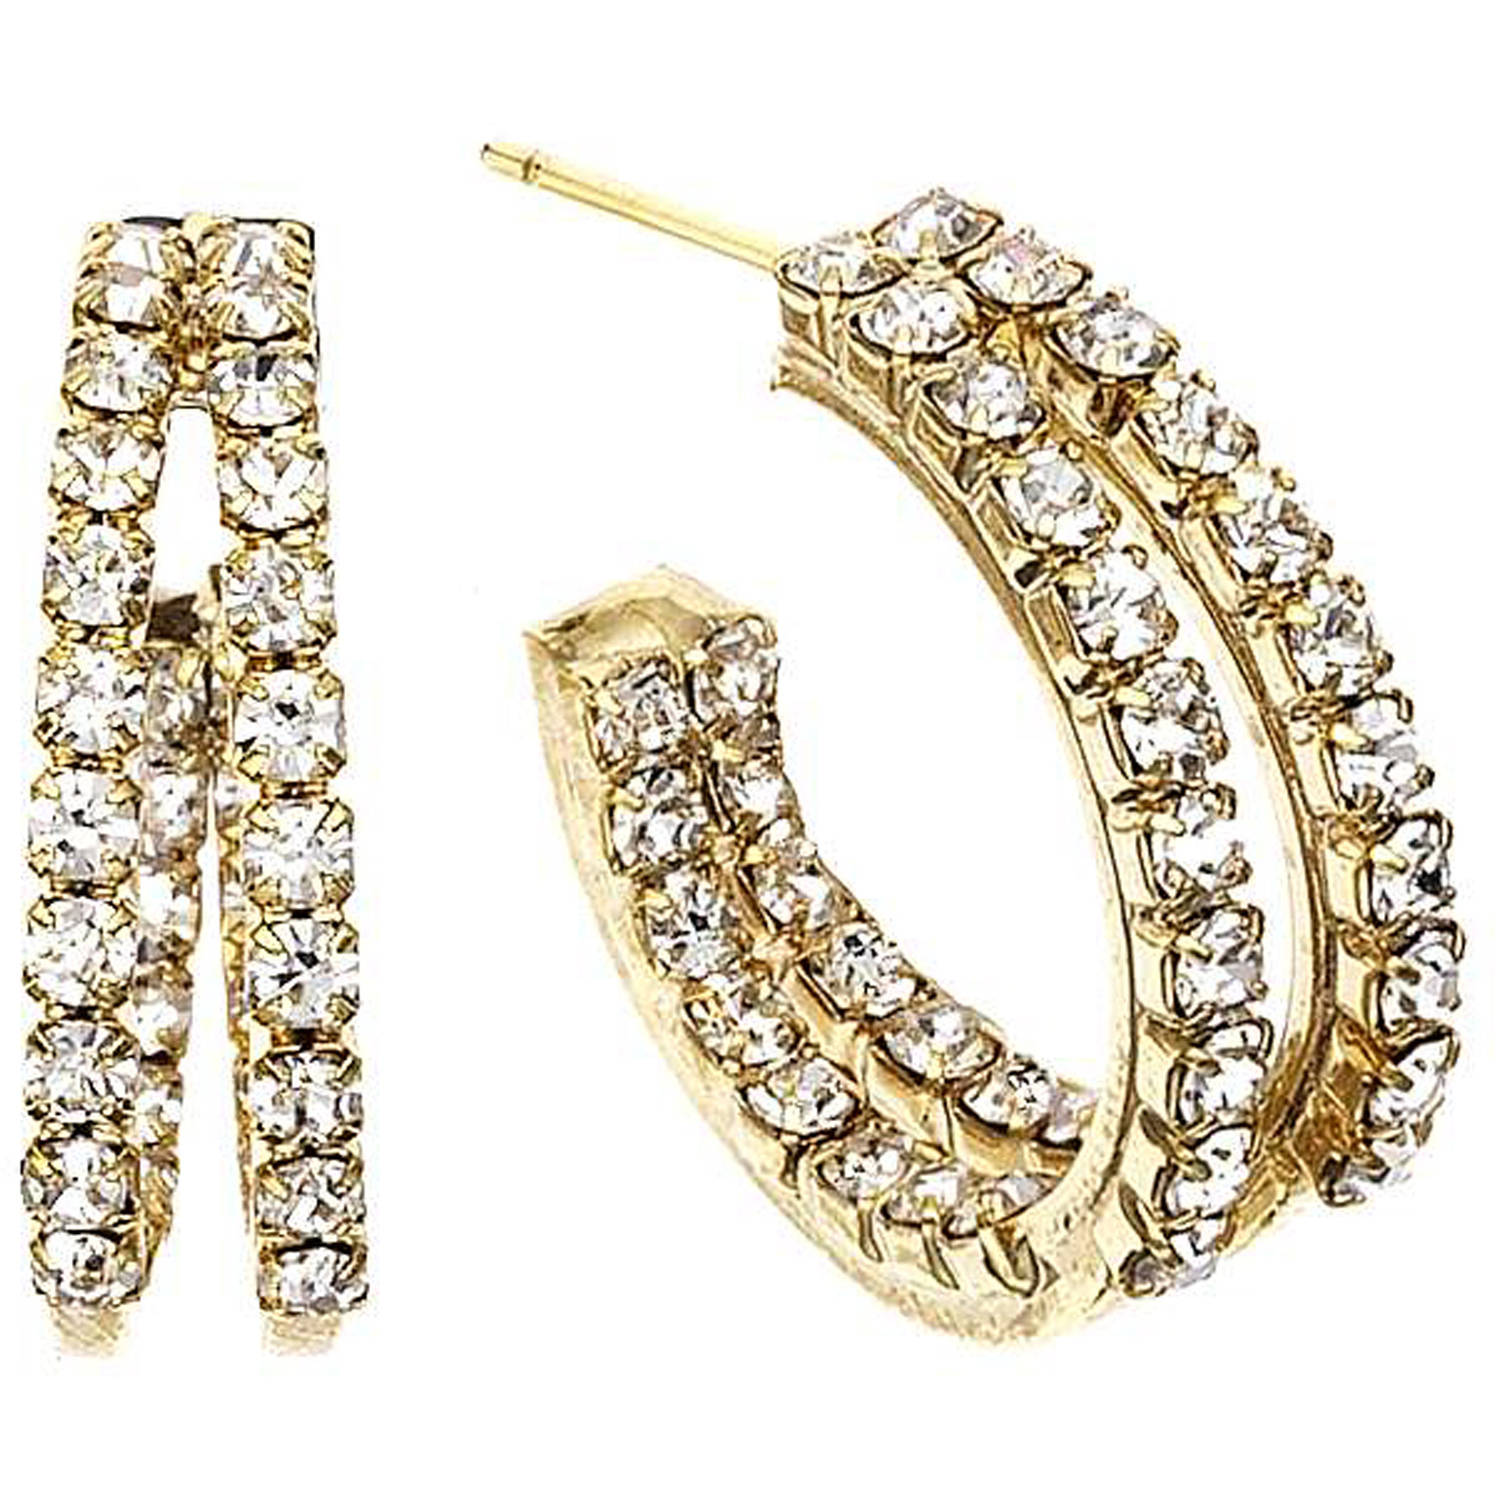 X & O Handset Austrian Crystal 20mm Gold-Plated Two-Row Inside-Out Earrings